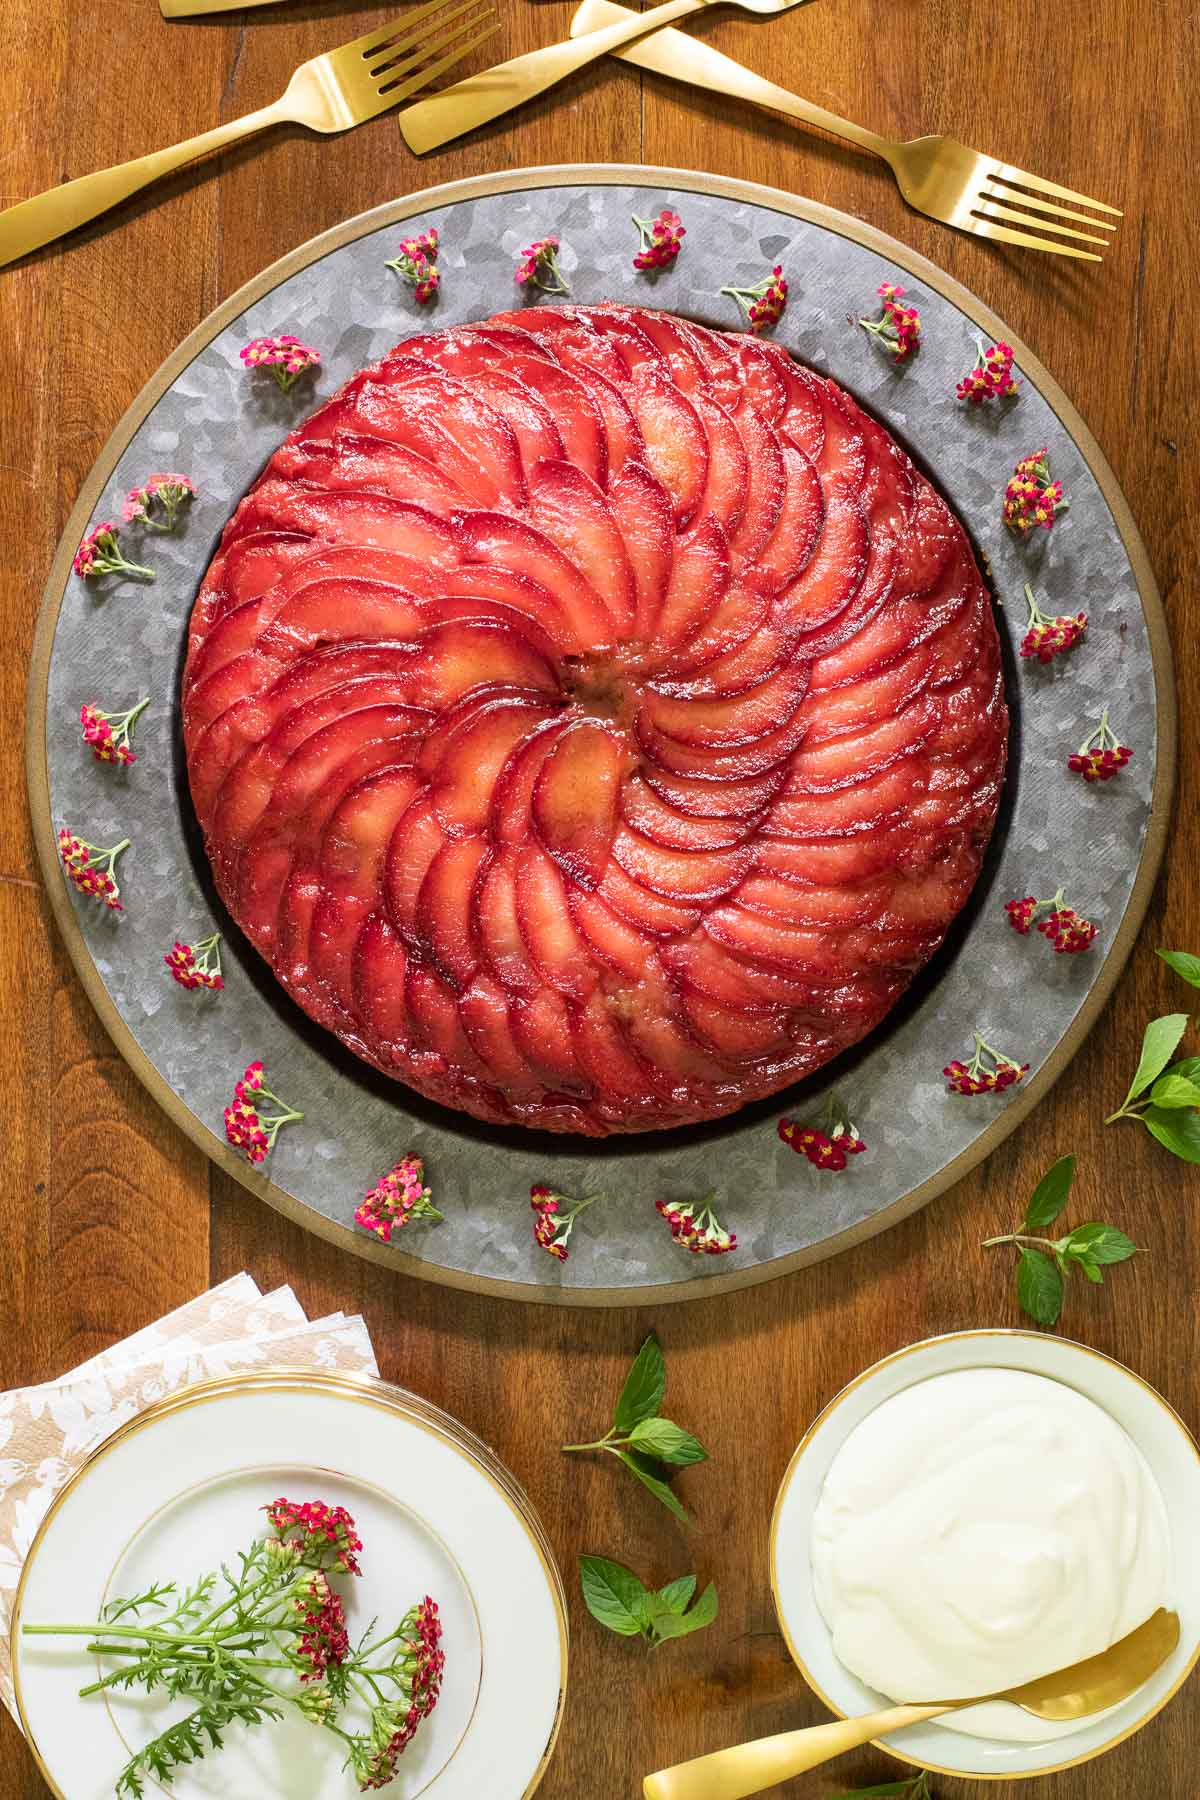 Overhead vertical photo of a Upside Down Plum Cake on a galvanized charger plate.